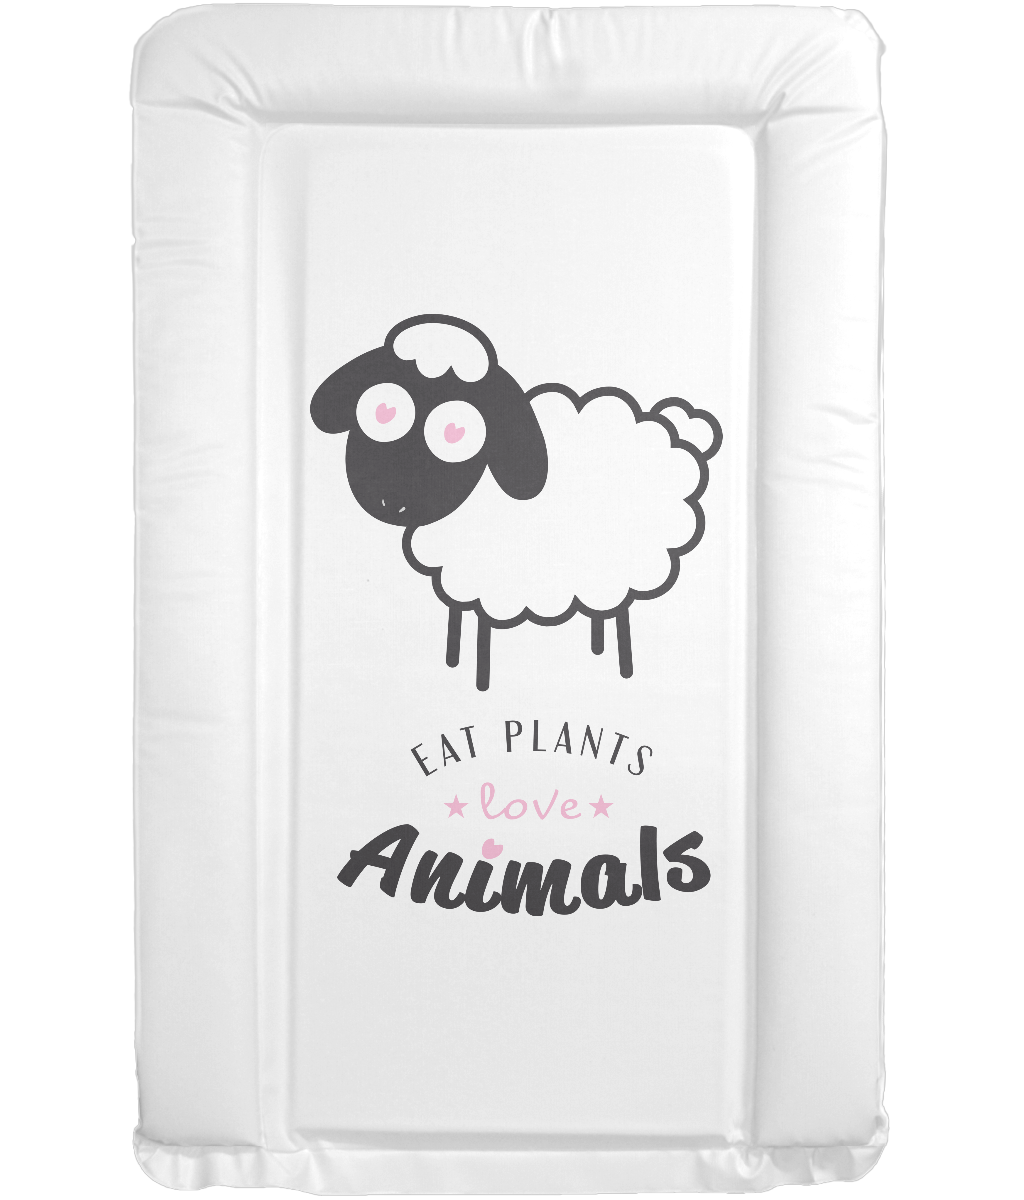 Eat Plants Love Animals Sheep PVC Changing Mat 0005 - Accessories & Homeware - EchoWears T-Shirts & Accessories